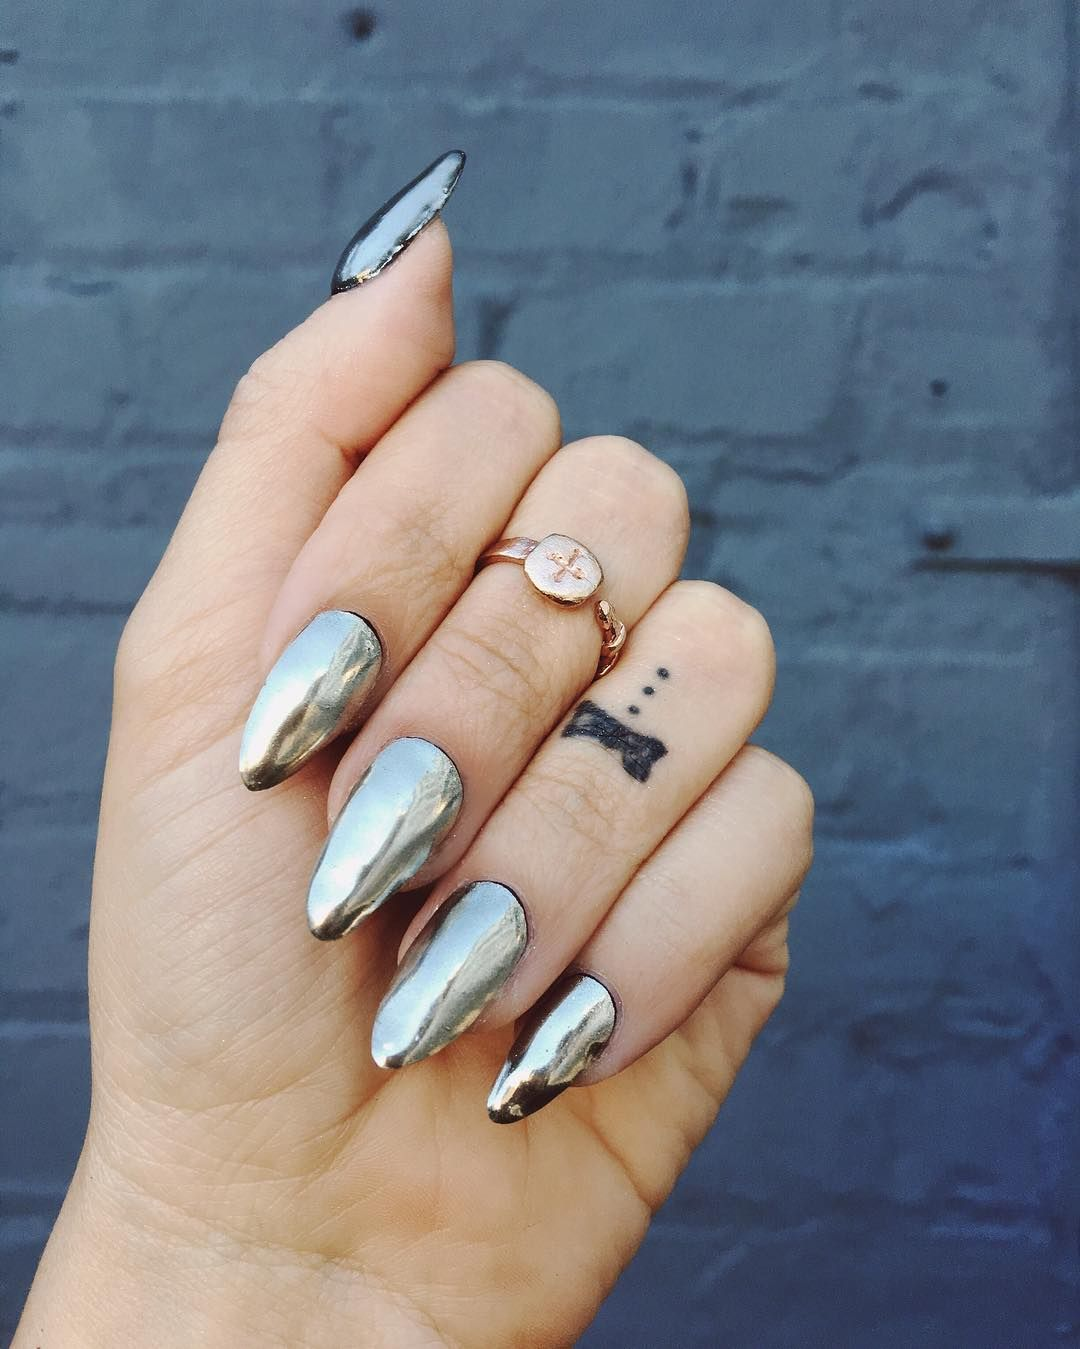 Chrome nails A dark silver chrome looks so pretty with rose gold